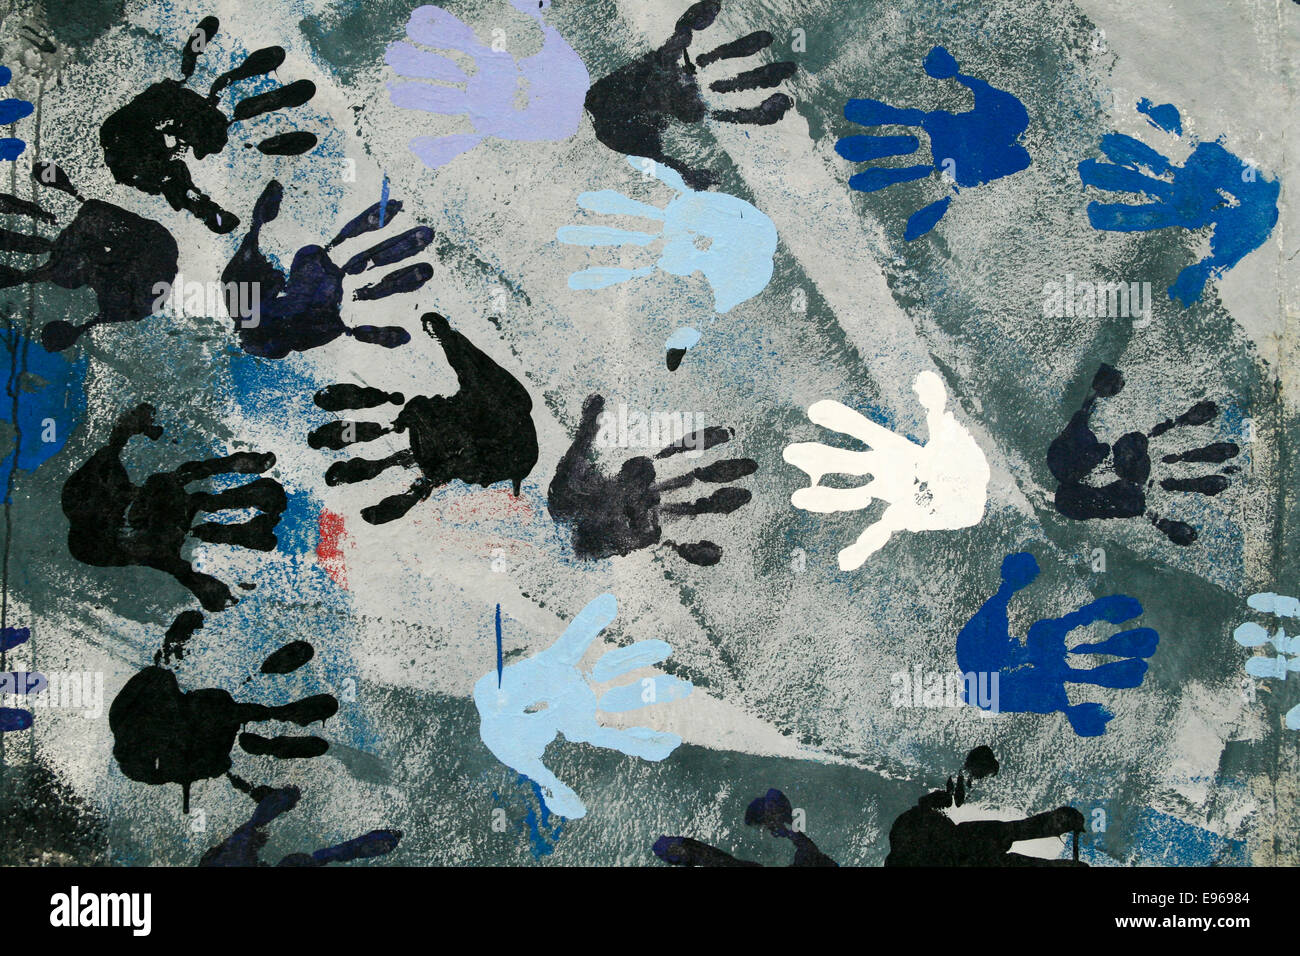 Section of painting with handprints at East Side Gallery, Berlin Wall, Berlin, Germany.  'Touch the Wall' - Stock Image